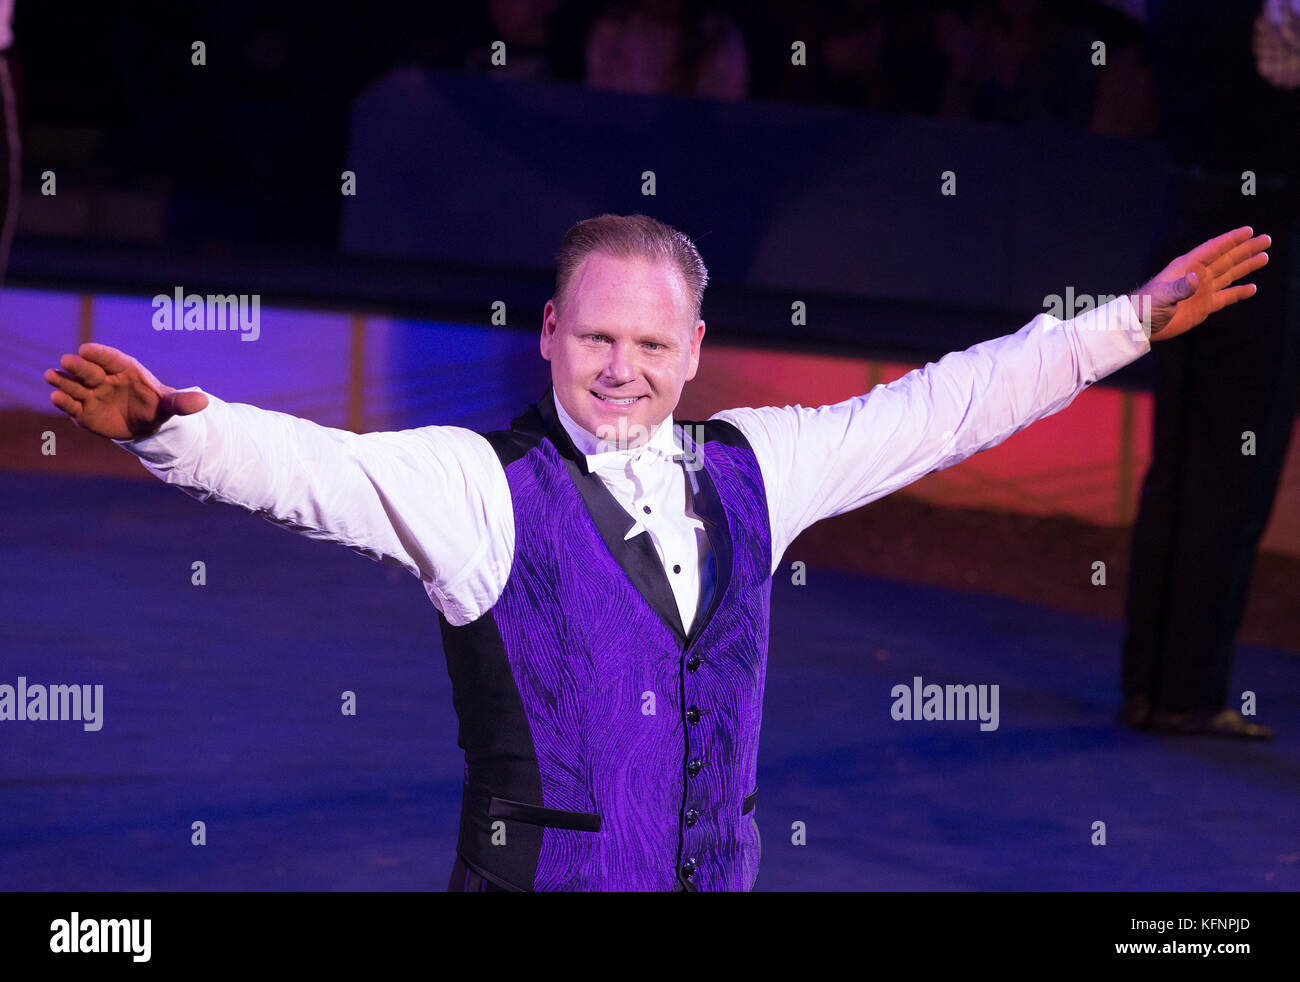 New York, United States. 29th Oct, 2017. Nik Wallenda high wire performs at Big Apple Circus opening night at Lincoln - Stock Image